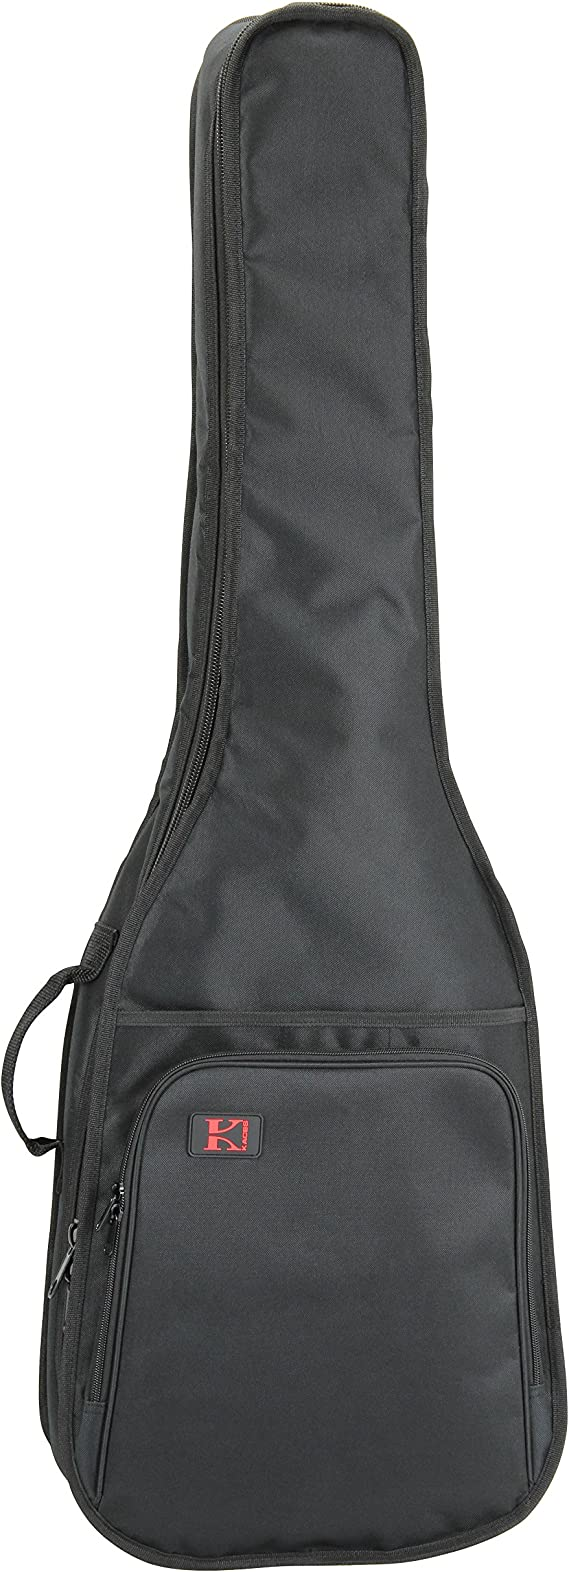 Kaces Gigpak Semi Hollow Guitar Bag